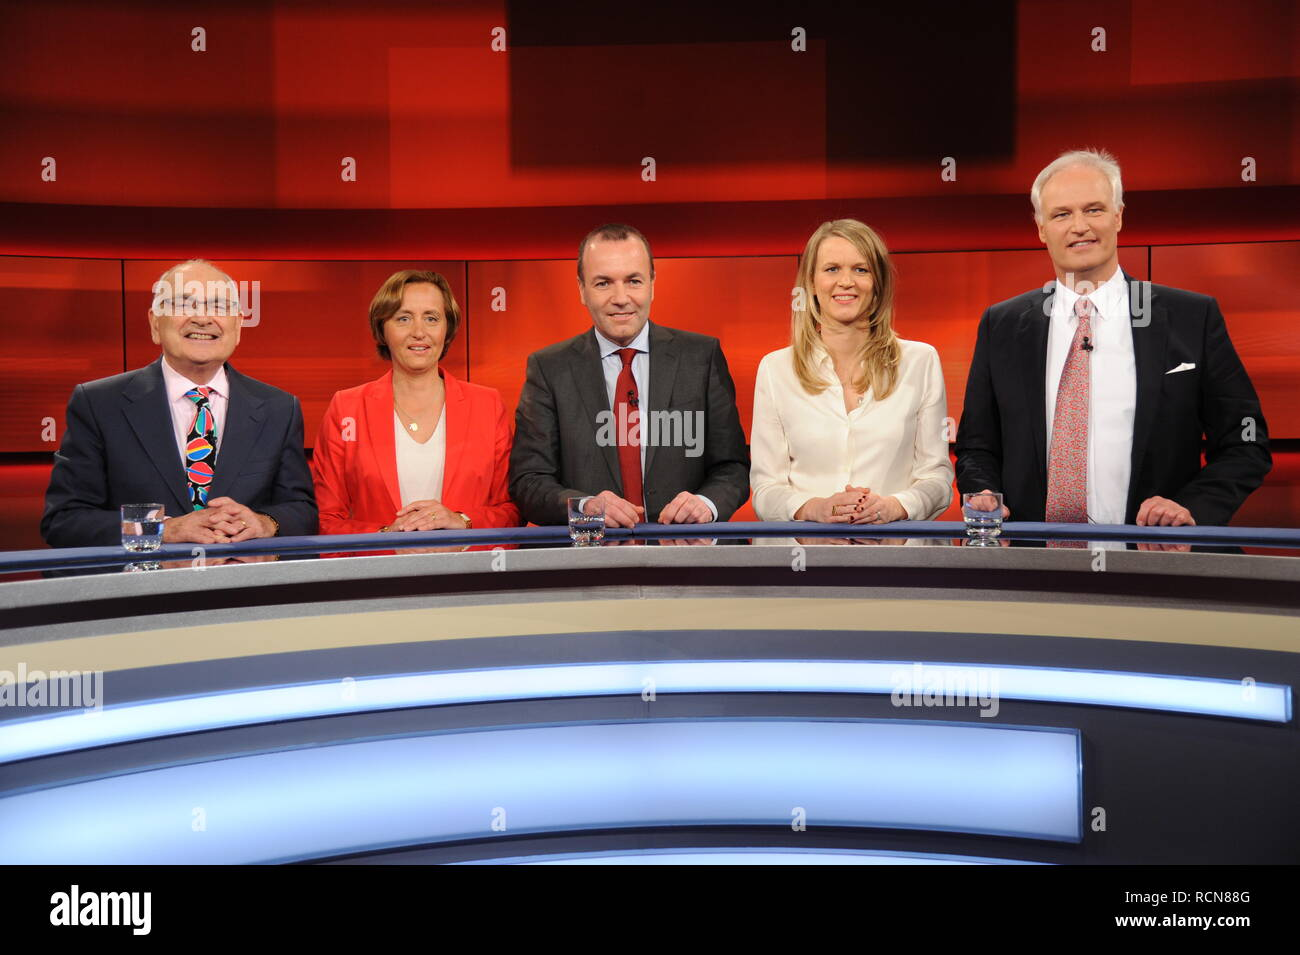 14 January 2019, Köln: The guests of the ARD talk show 'Hart aber Fair' on 14.01.2019 in Cologne with the topic Brexit episodes ' The Brexit showdown: beginning of the end of Europe? ' Anthony Glees, l-r, Beatrix von Srorch, Manfred Weber, Julie Kurz and Carl Martin Welcker. Photo: Horst Galuschka Photo: Horst Galuschka/dpa - Stock Image